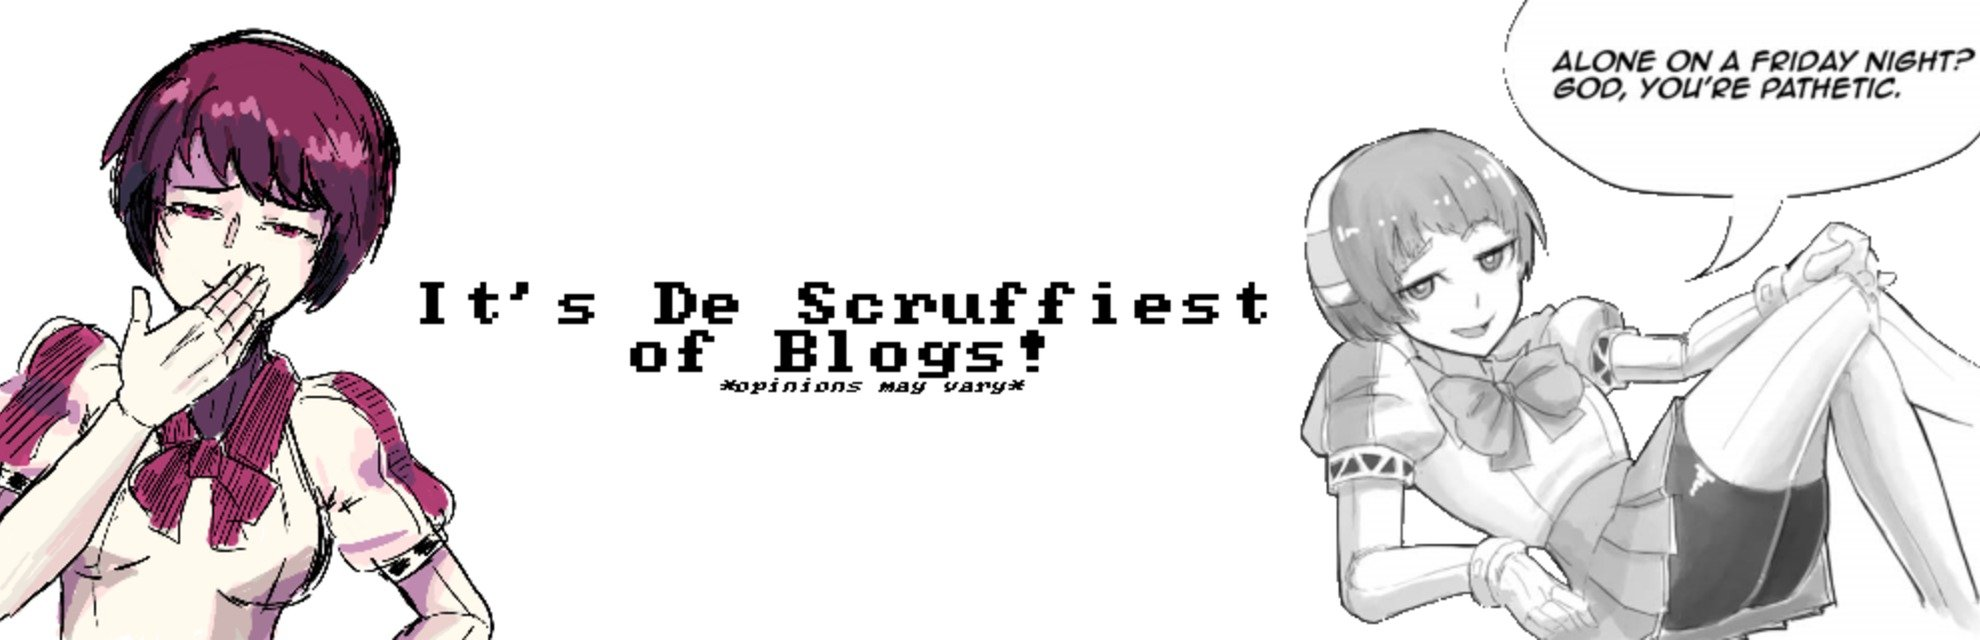 DeScruff blog header photo